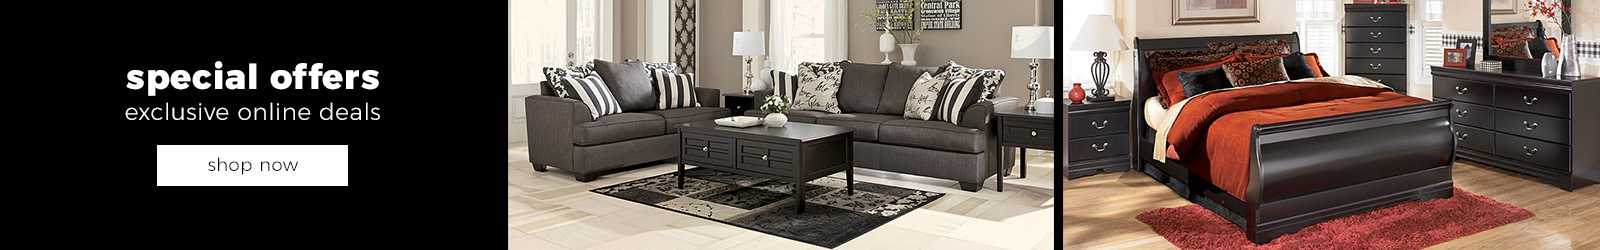 Furniture Deals Bensalem, PA